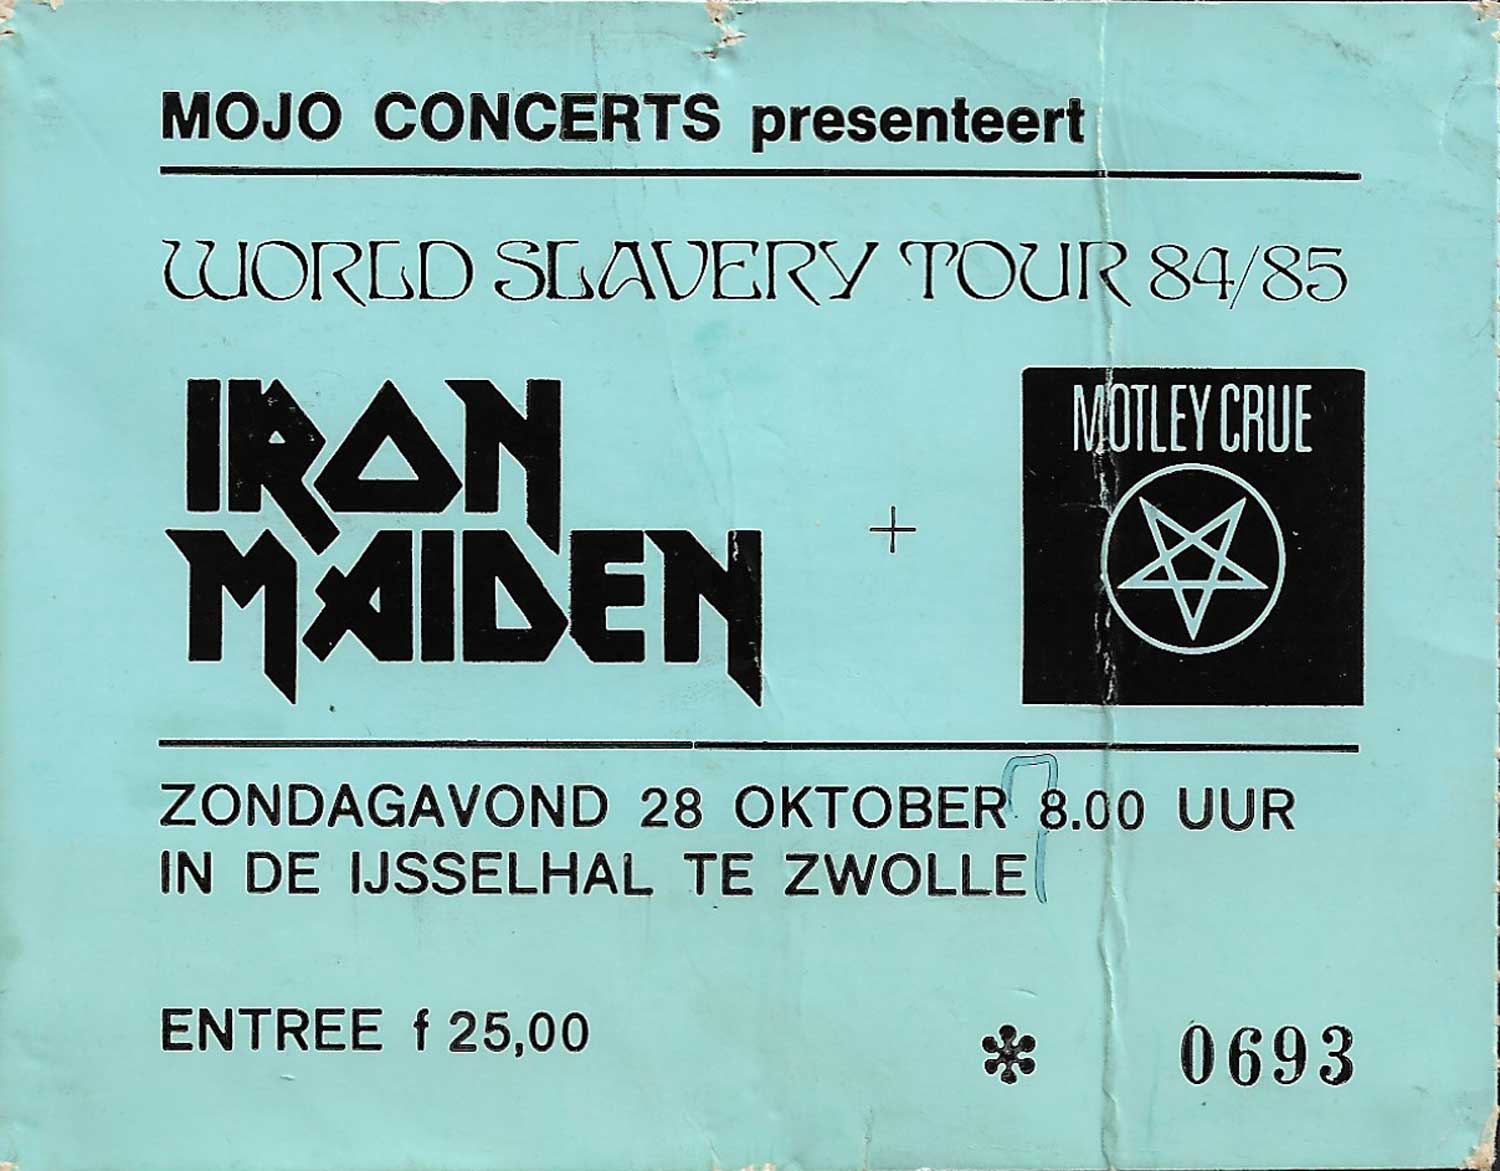 Iron Maiden ticket at IJsselhallen, Zwolle, Netherlands 1984, World Slavery Tour